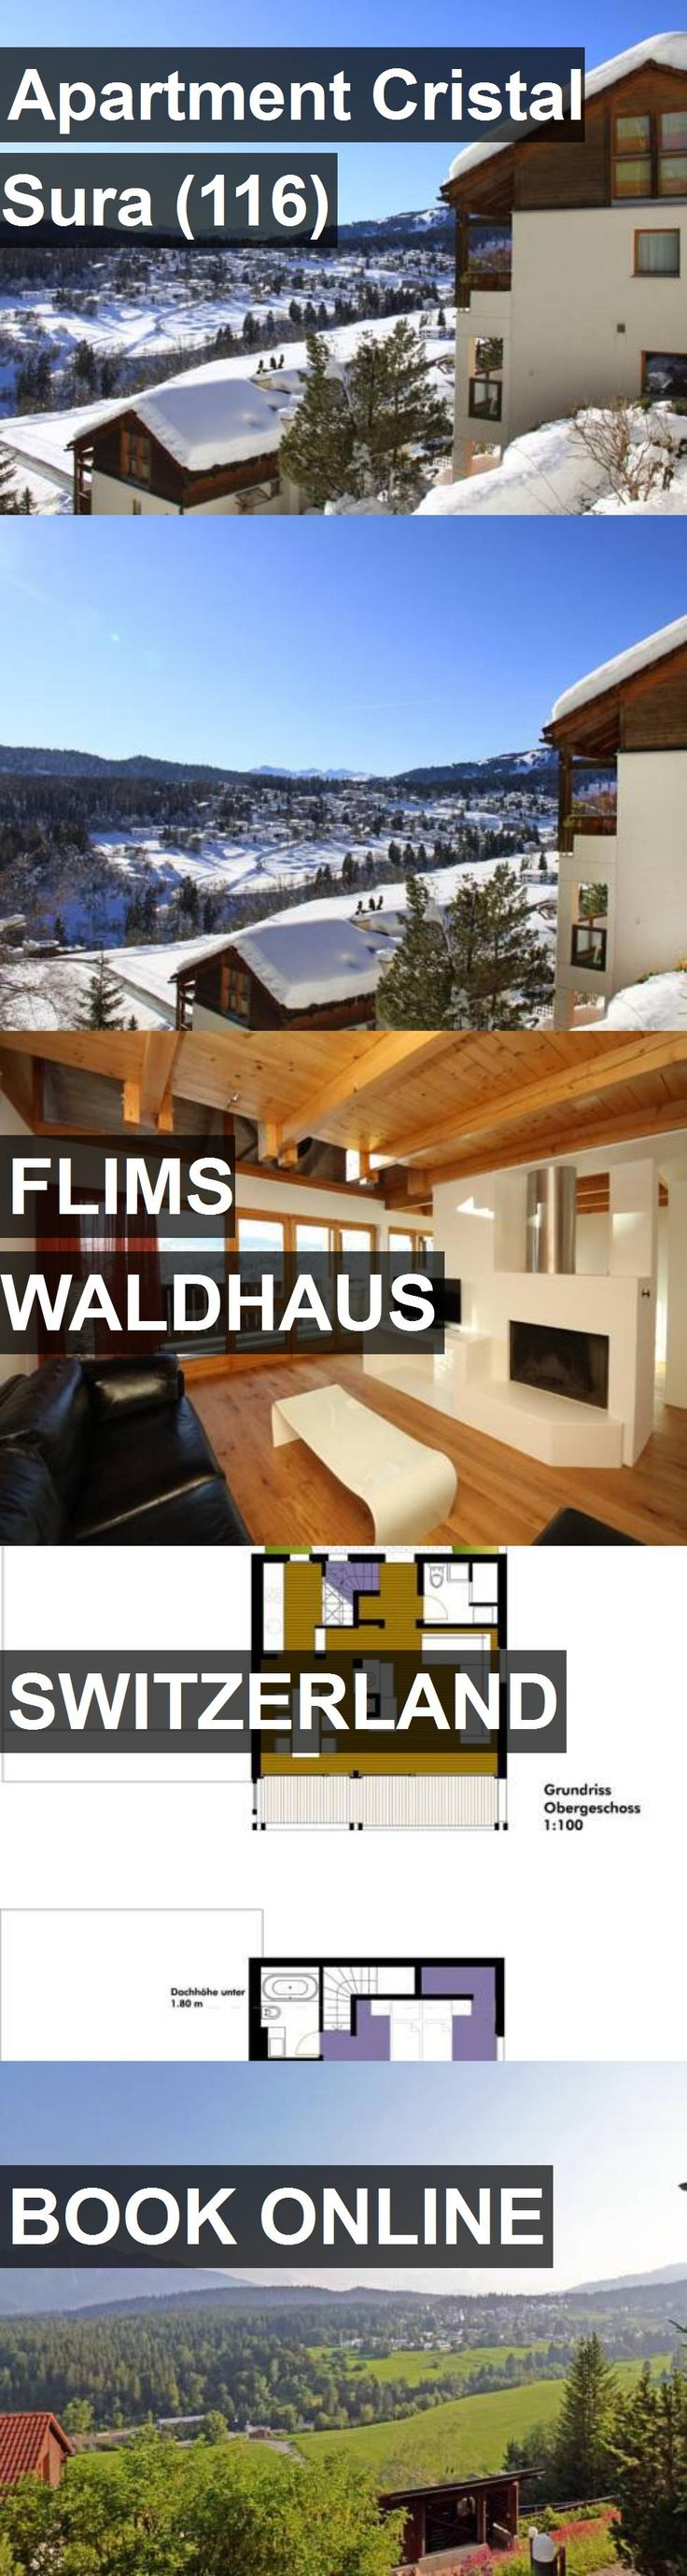 Apartment Cristal Sura (116) in Flims Waldhaus, Switzerland. For more information, photos, reviews and best prices please follow the link. #Switzerland #FlimsWaldhaus #travel #vacation #apartment